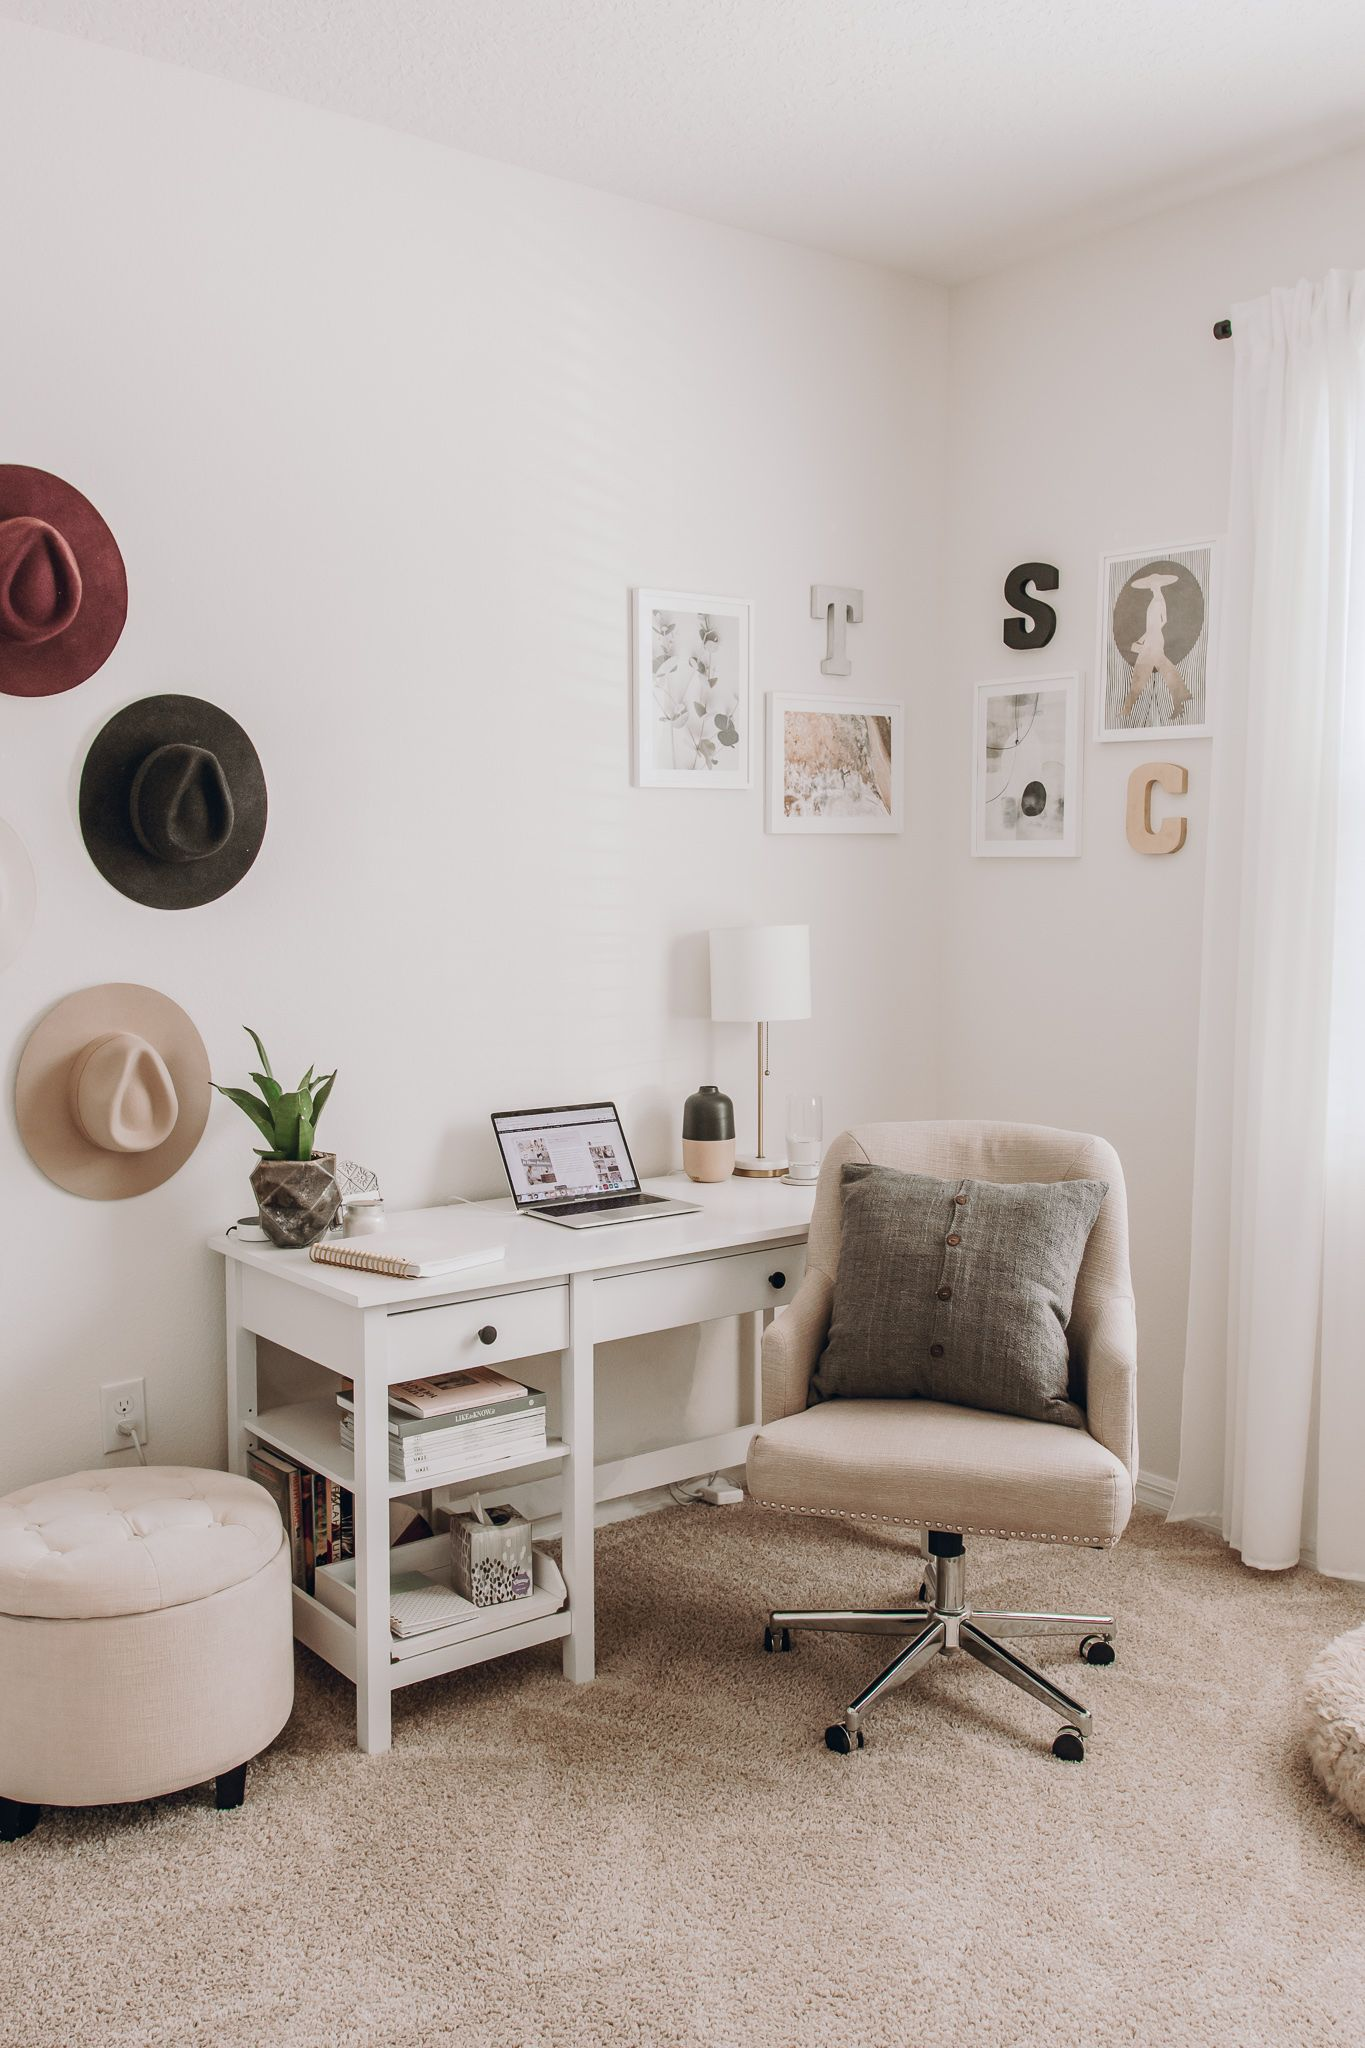 Modern Boho Chic Home Office Space Home Office Space White Desk Decor Simple Bedroom